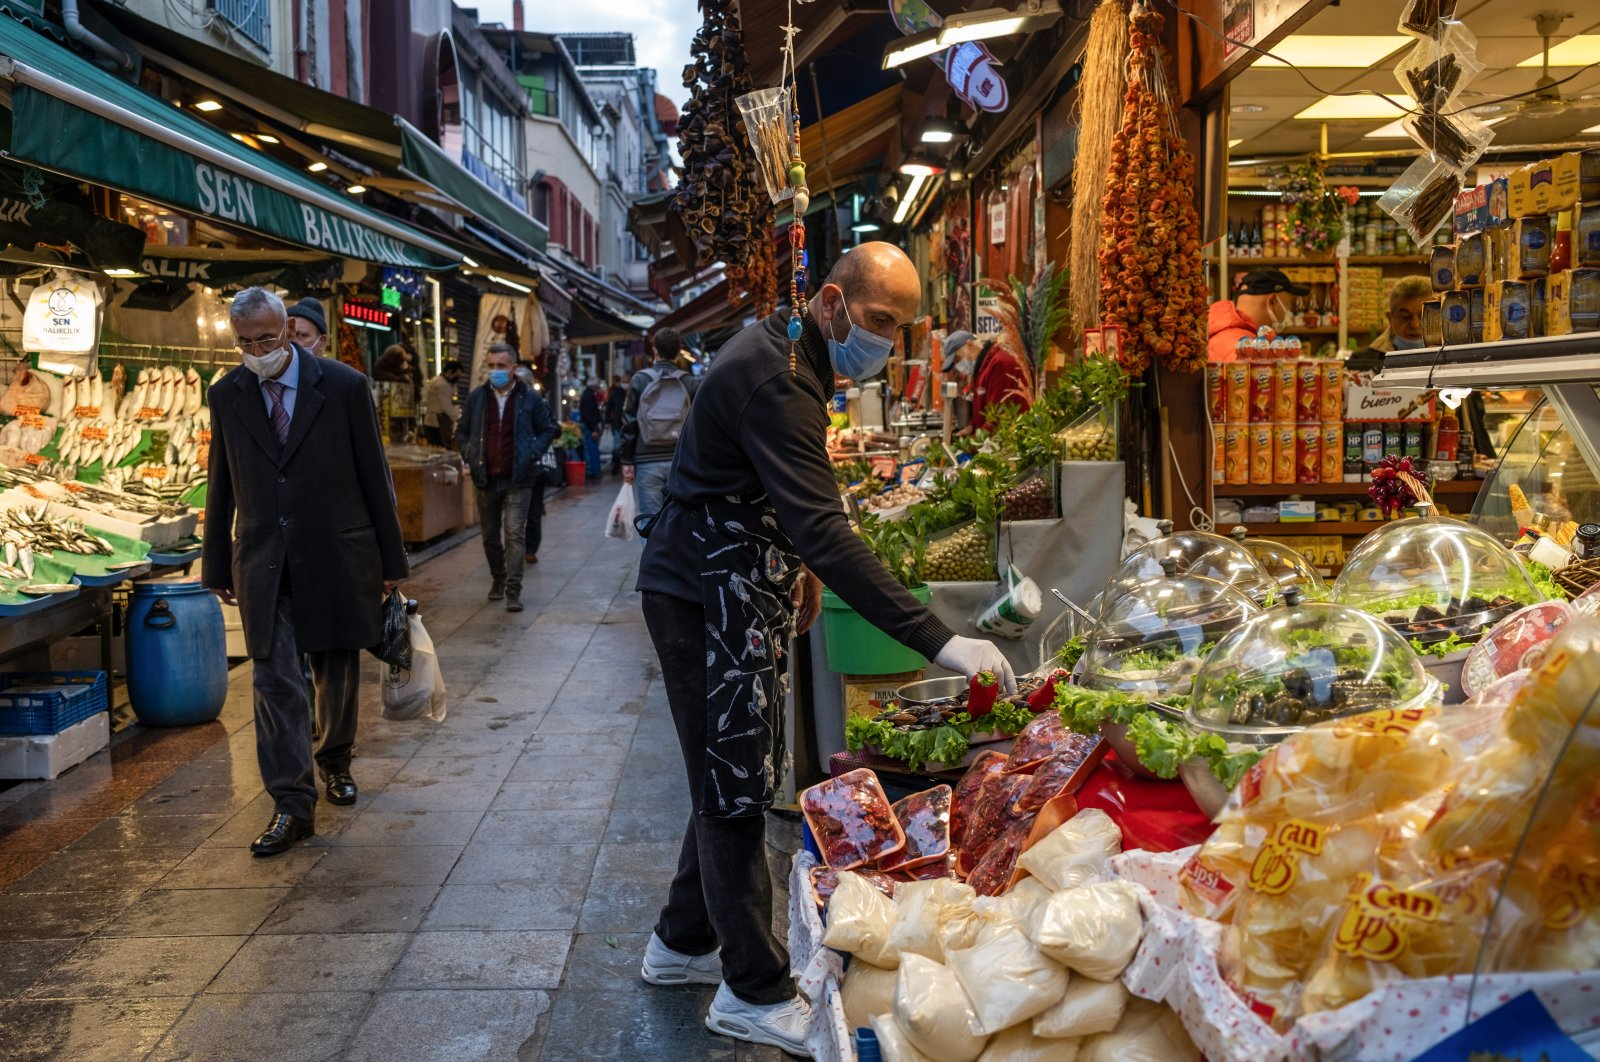 A man is seen while shopping in a local market in Istanbul, Turkey, Nov. 9, 2020. (Getty Images)